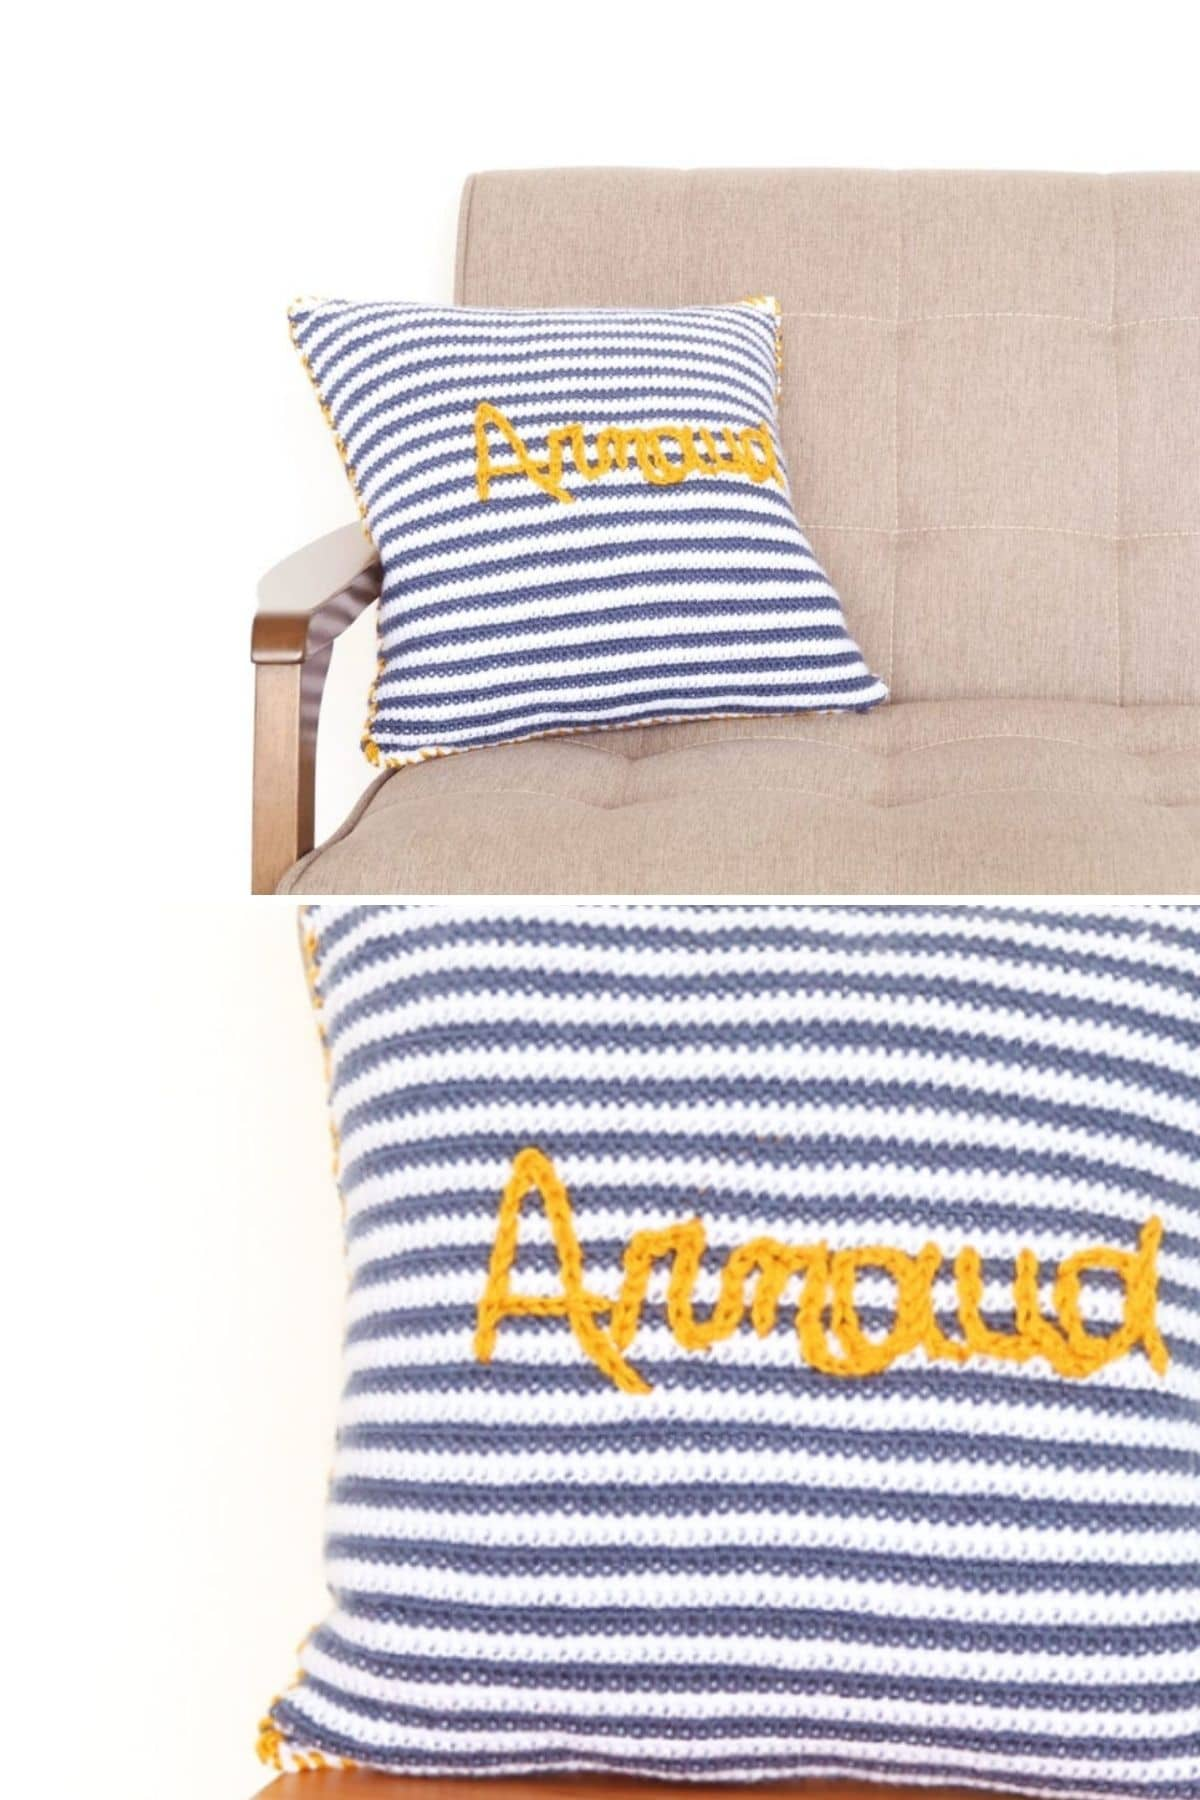 Blue and white striped pillow with yellow name